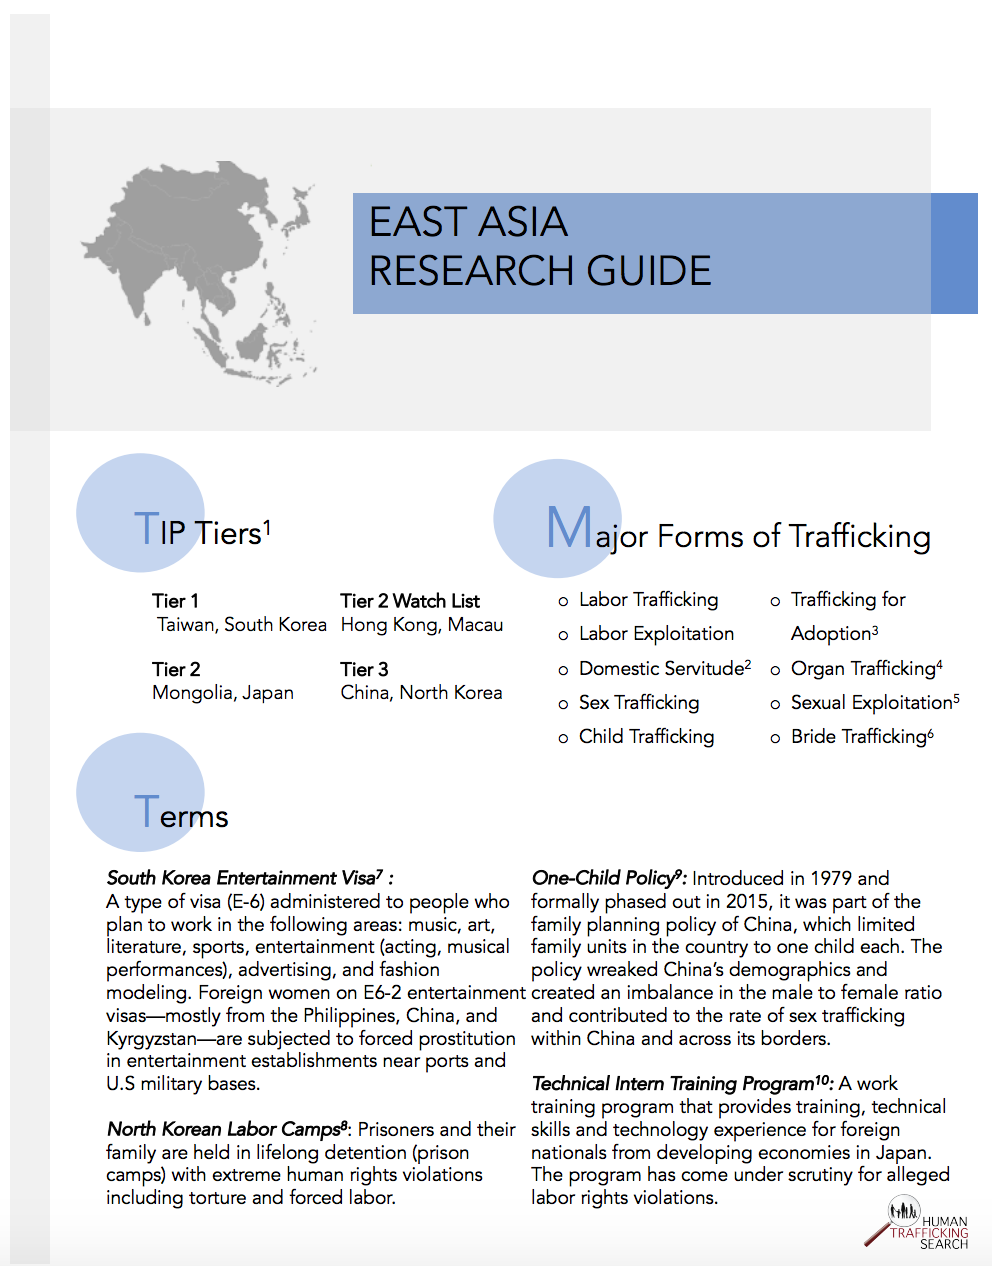 East Asia Research Guide